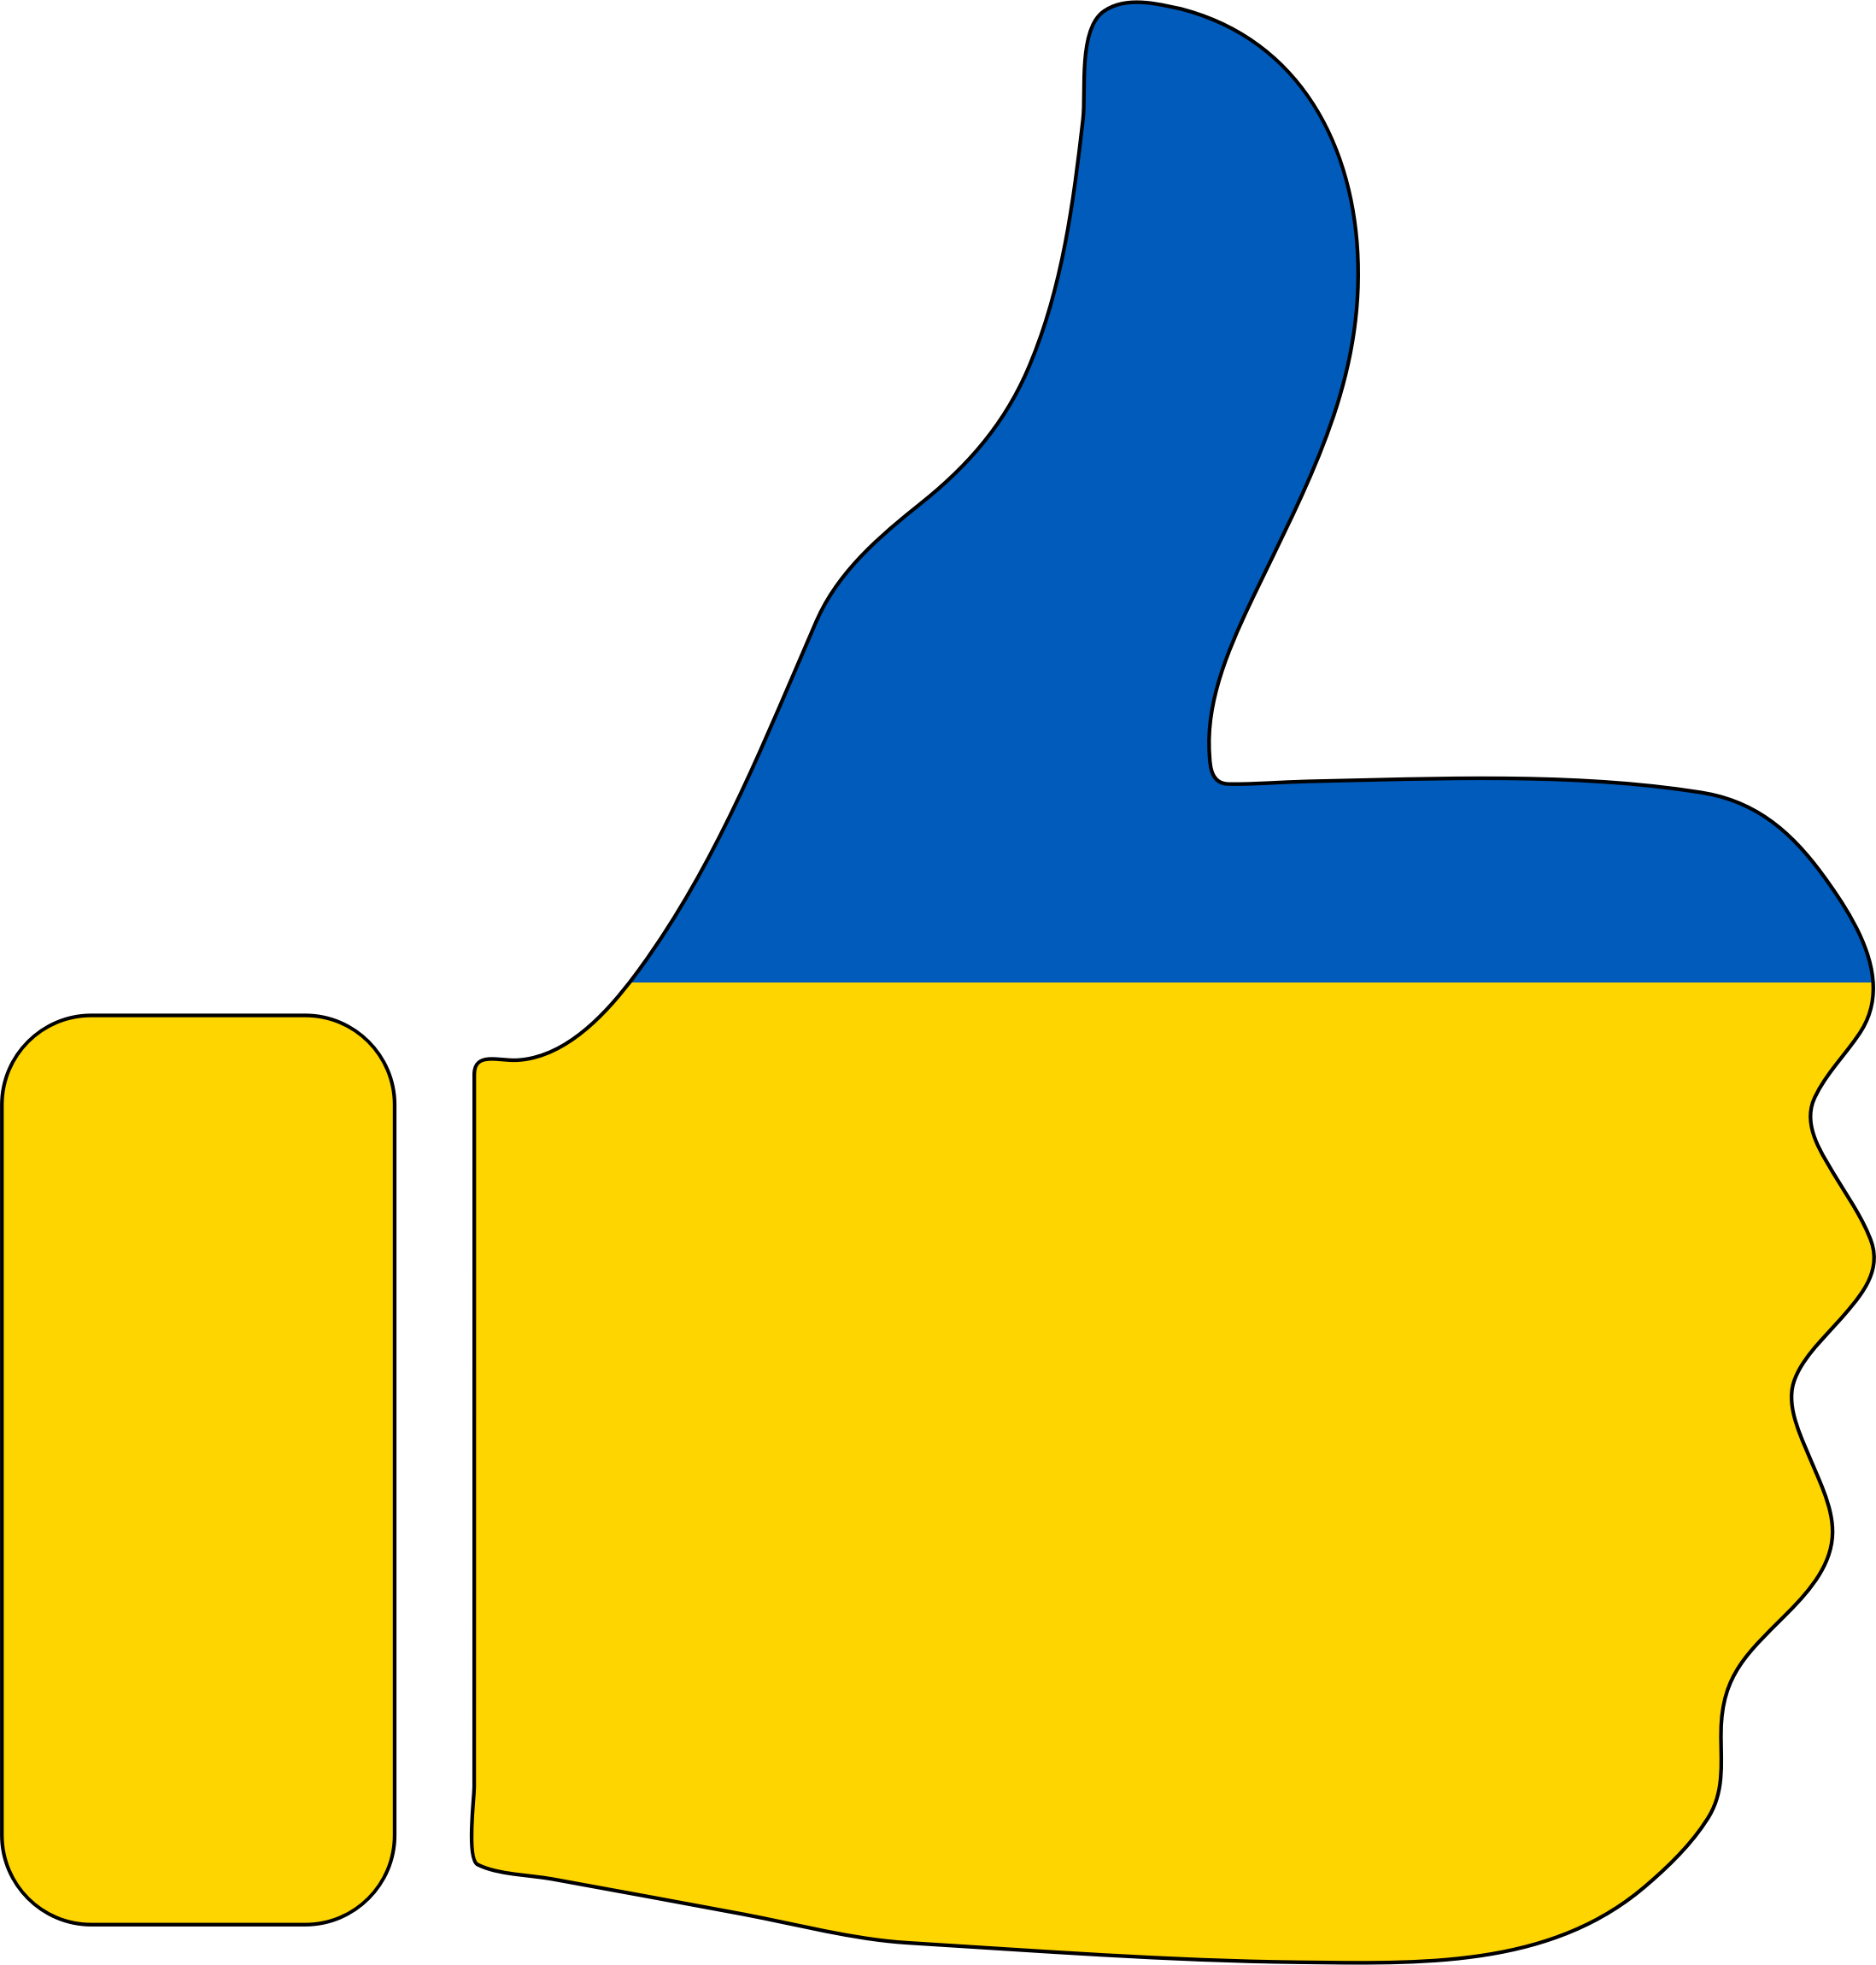 Thumbs Up Ukraine With Stroke by GDJ